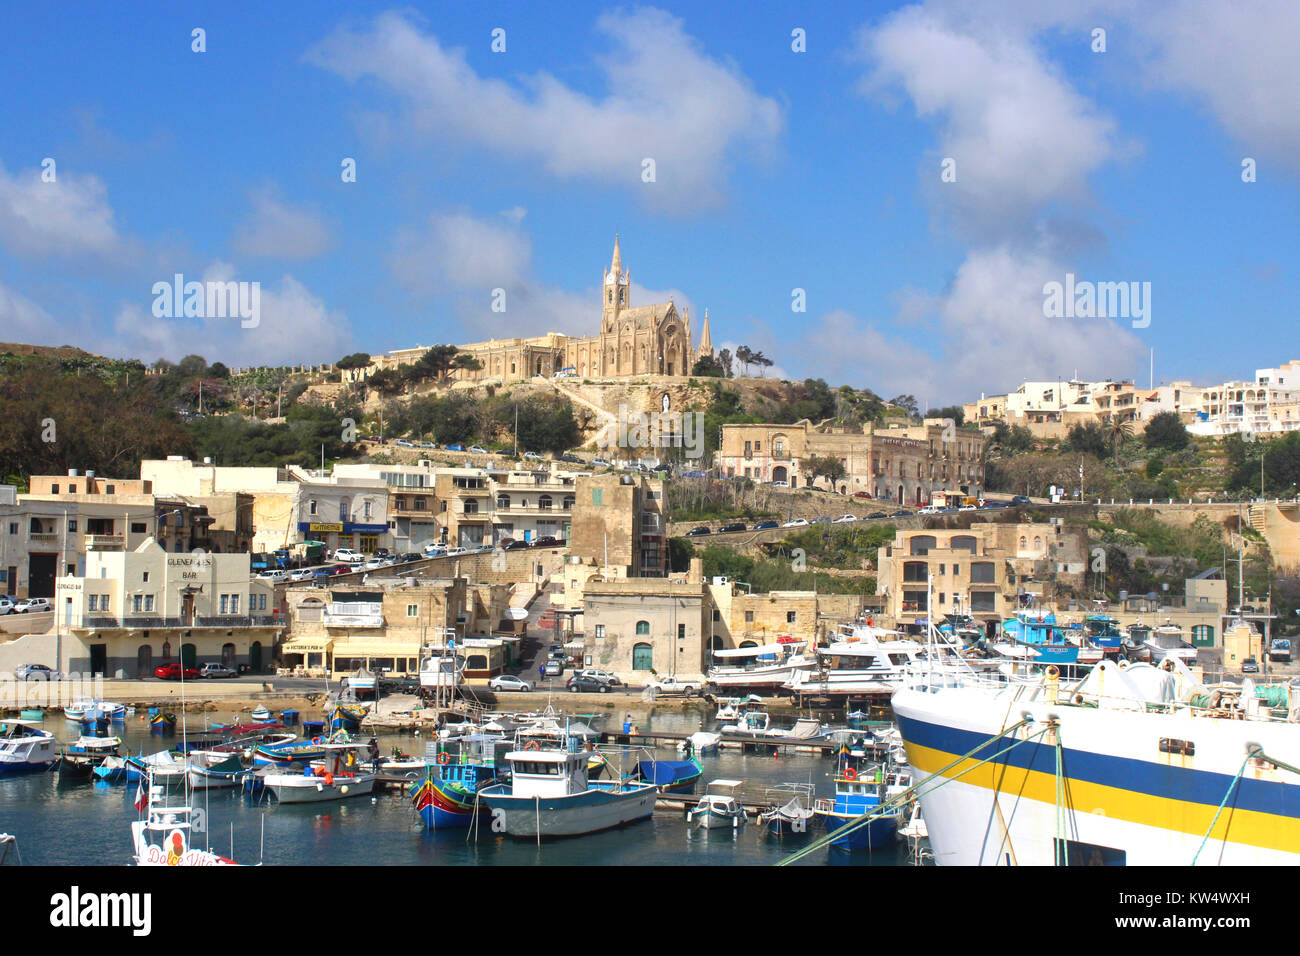 Mgarr, Gozo, Republic of Malta, with its port and the church on the hill - Stock Image